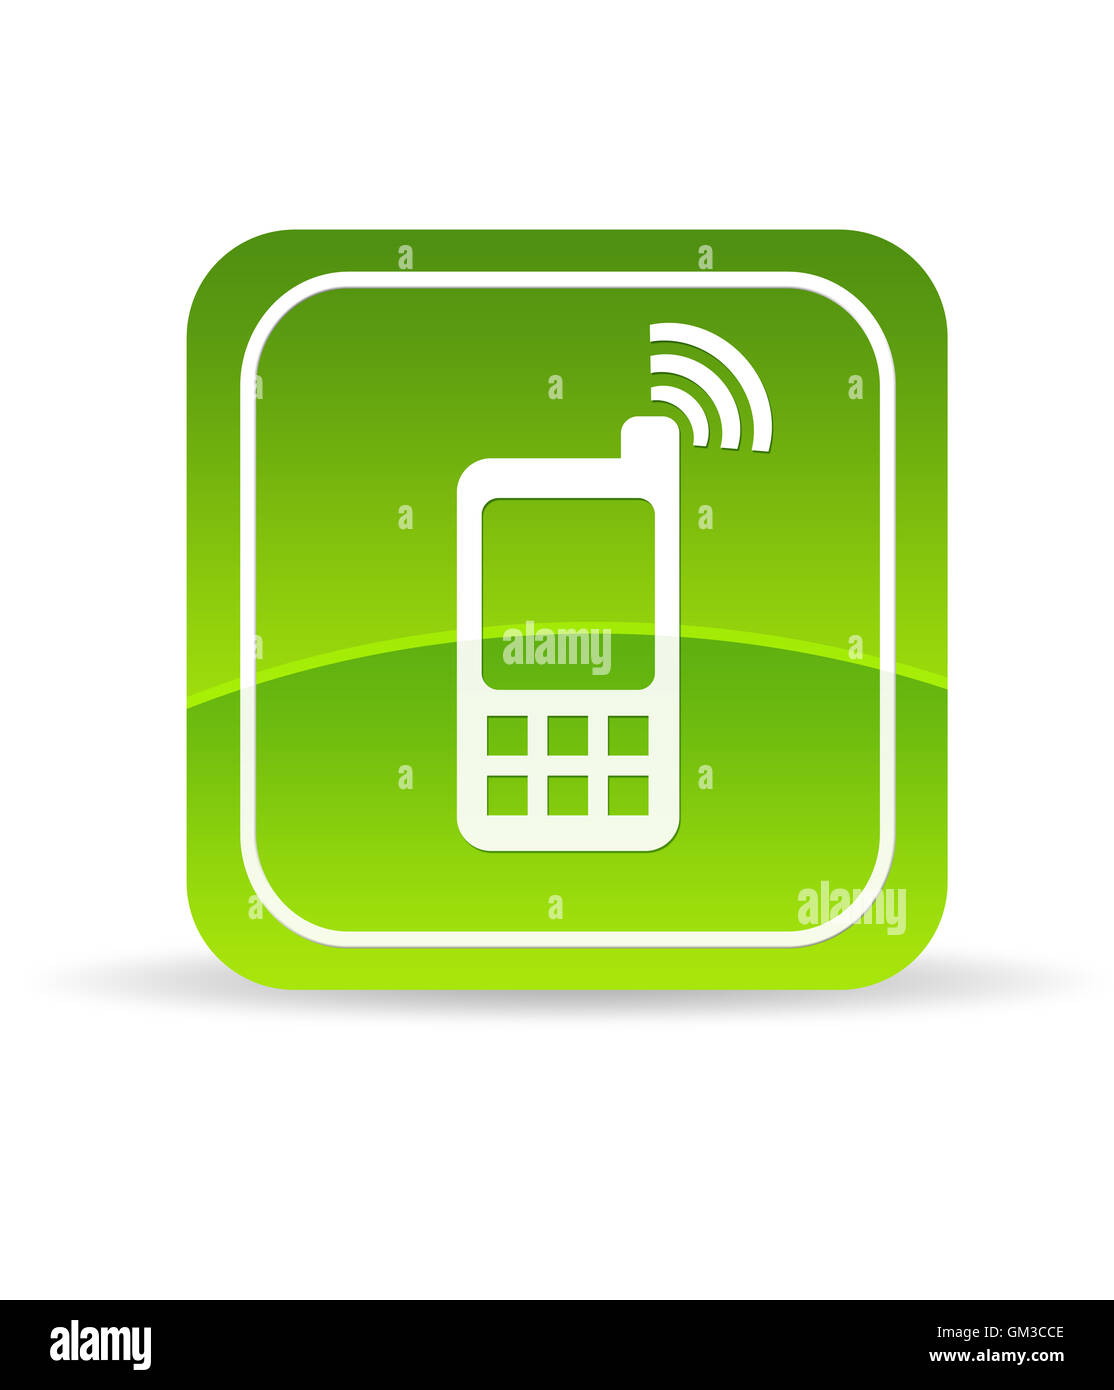 Green Mobile Phone Icon - Stock Image